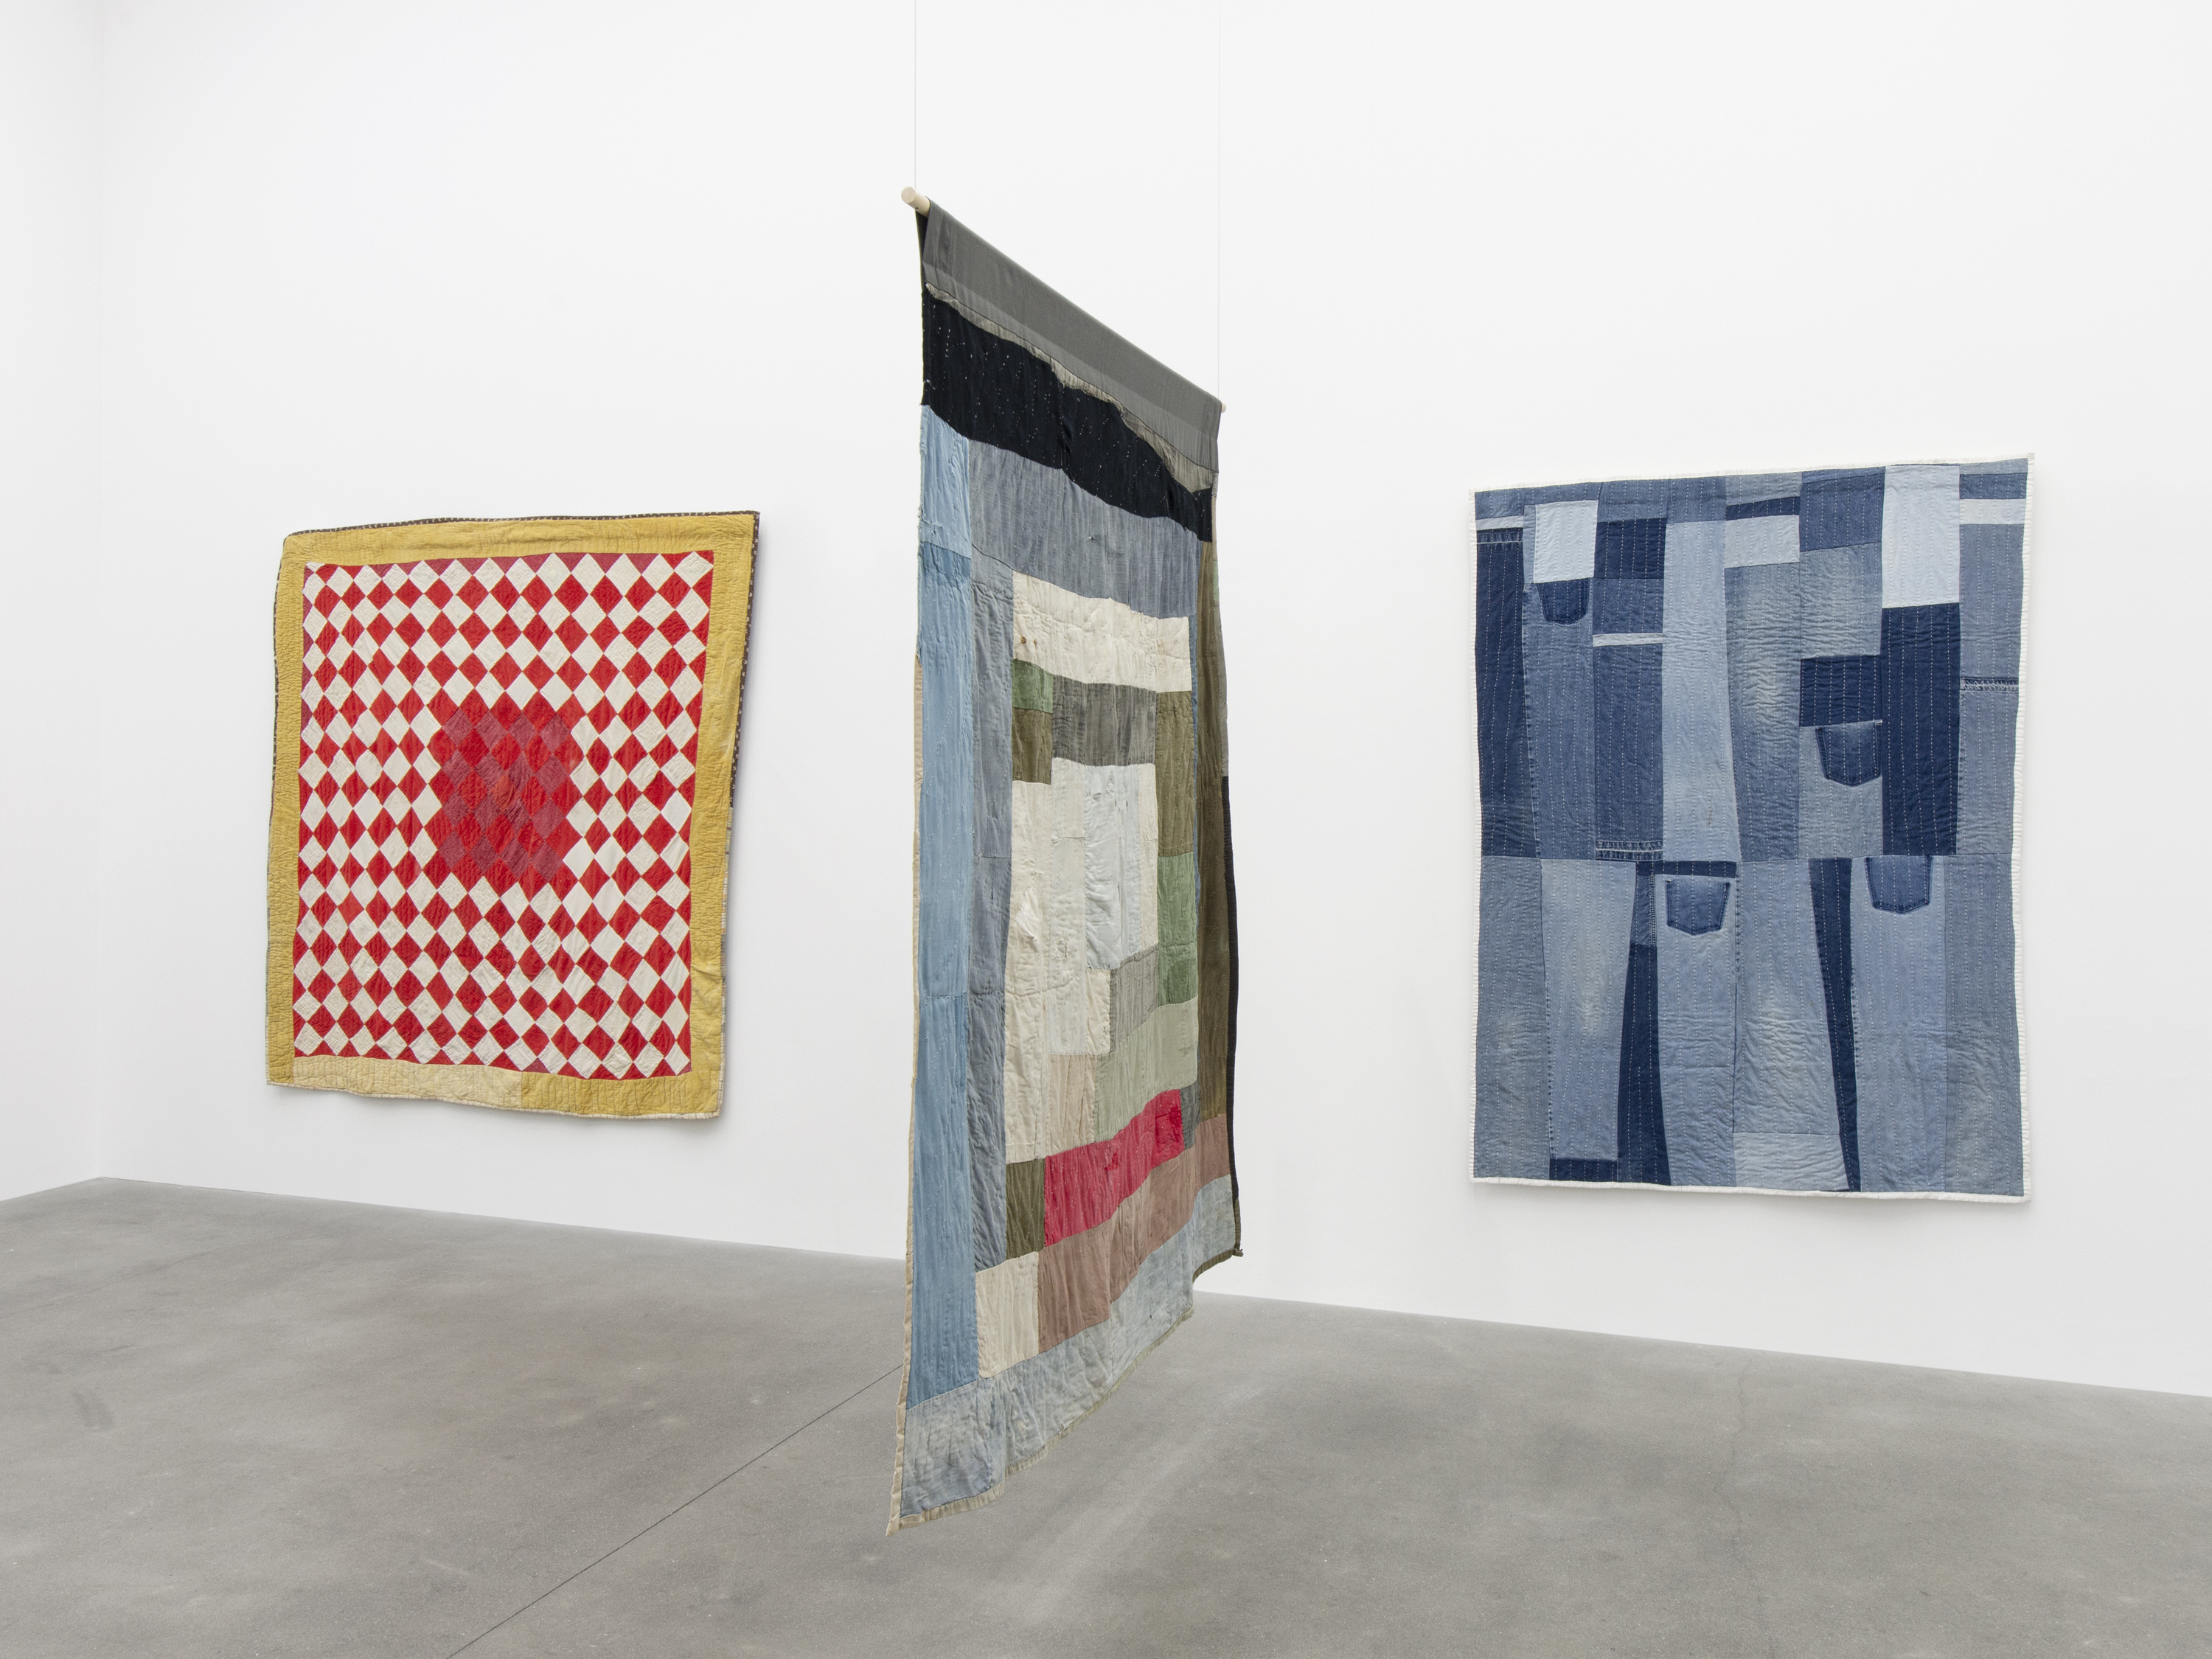 Installation View 7, THE GEE'S BEND QUILTMAKERS, Alison Jacques Gallery, 2021, All images courtesy of Alison Jacques Gallery